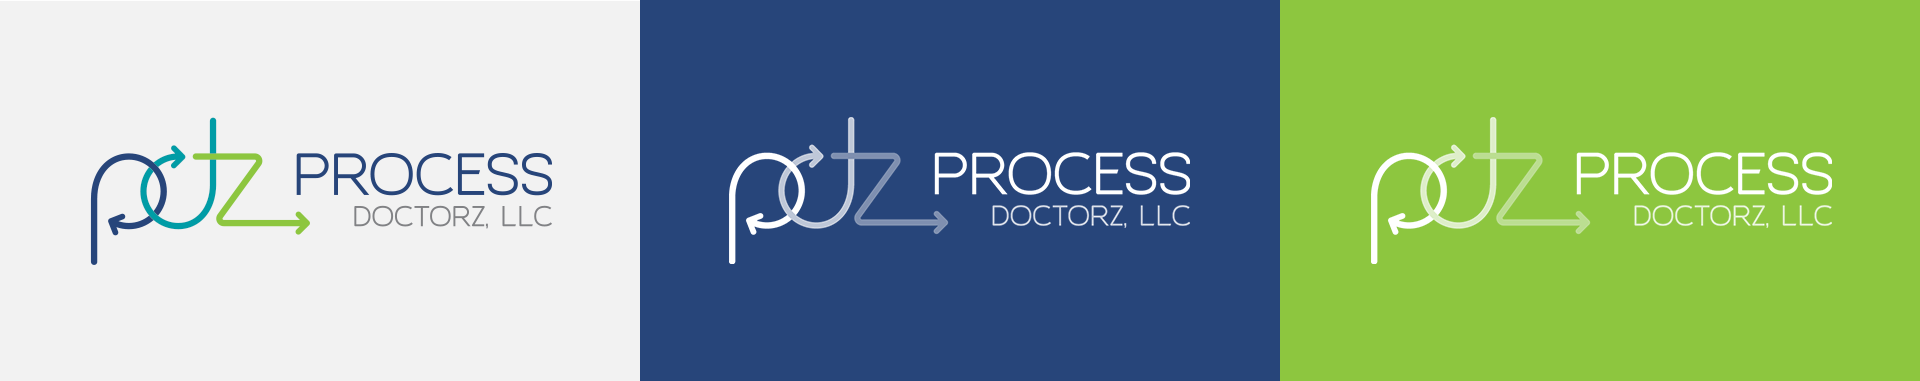 Horizontal orientation of process doctorz logo on different colors